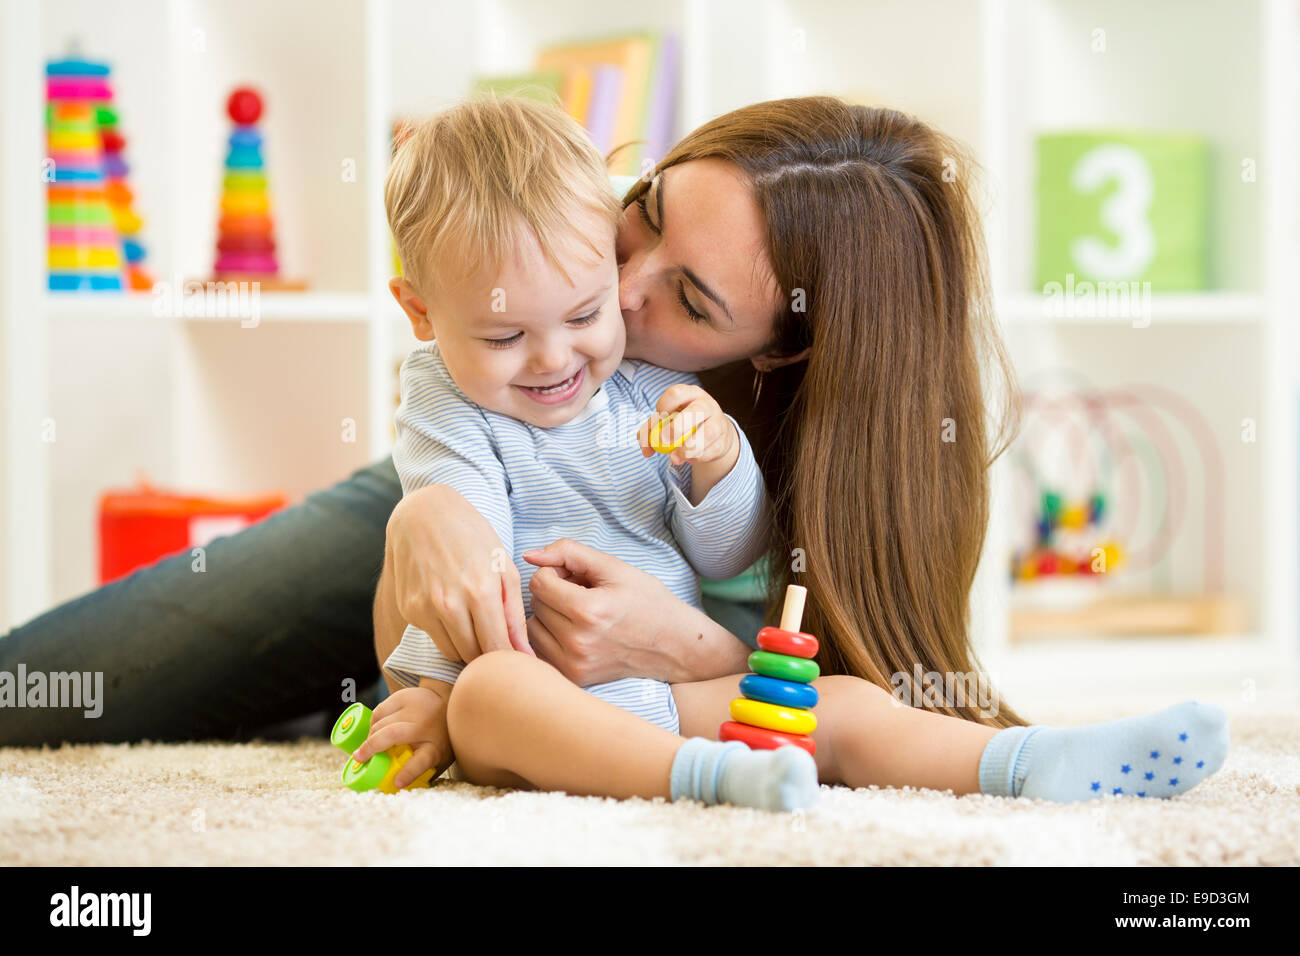 happy mother and child son playing  indoor at home - Stock Image